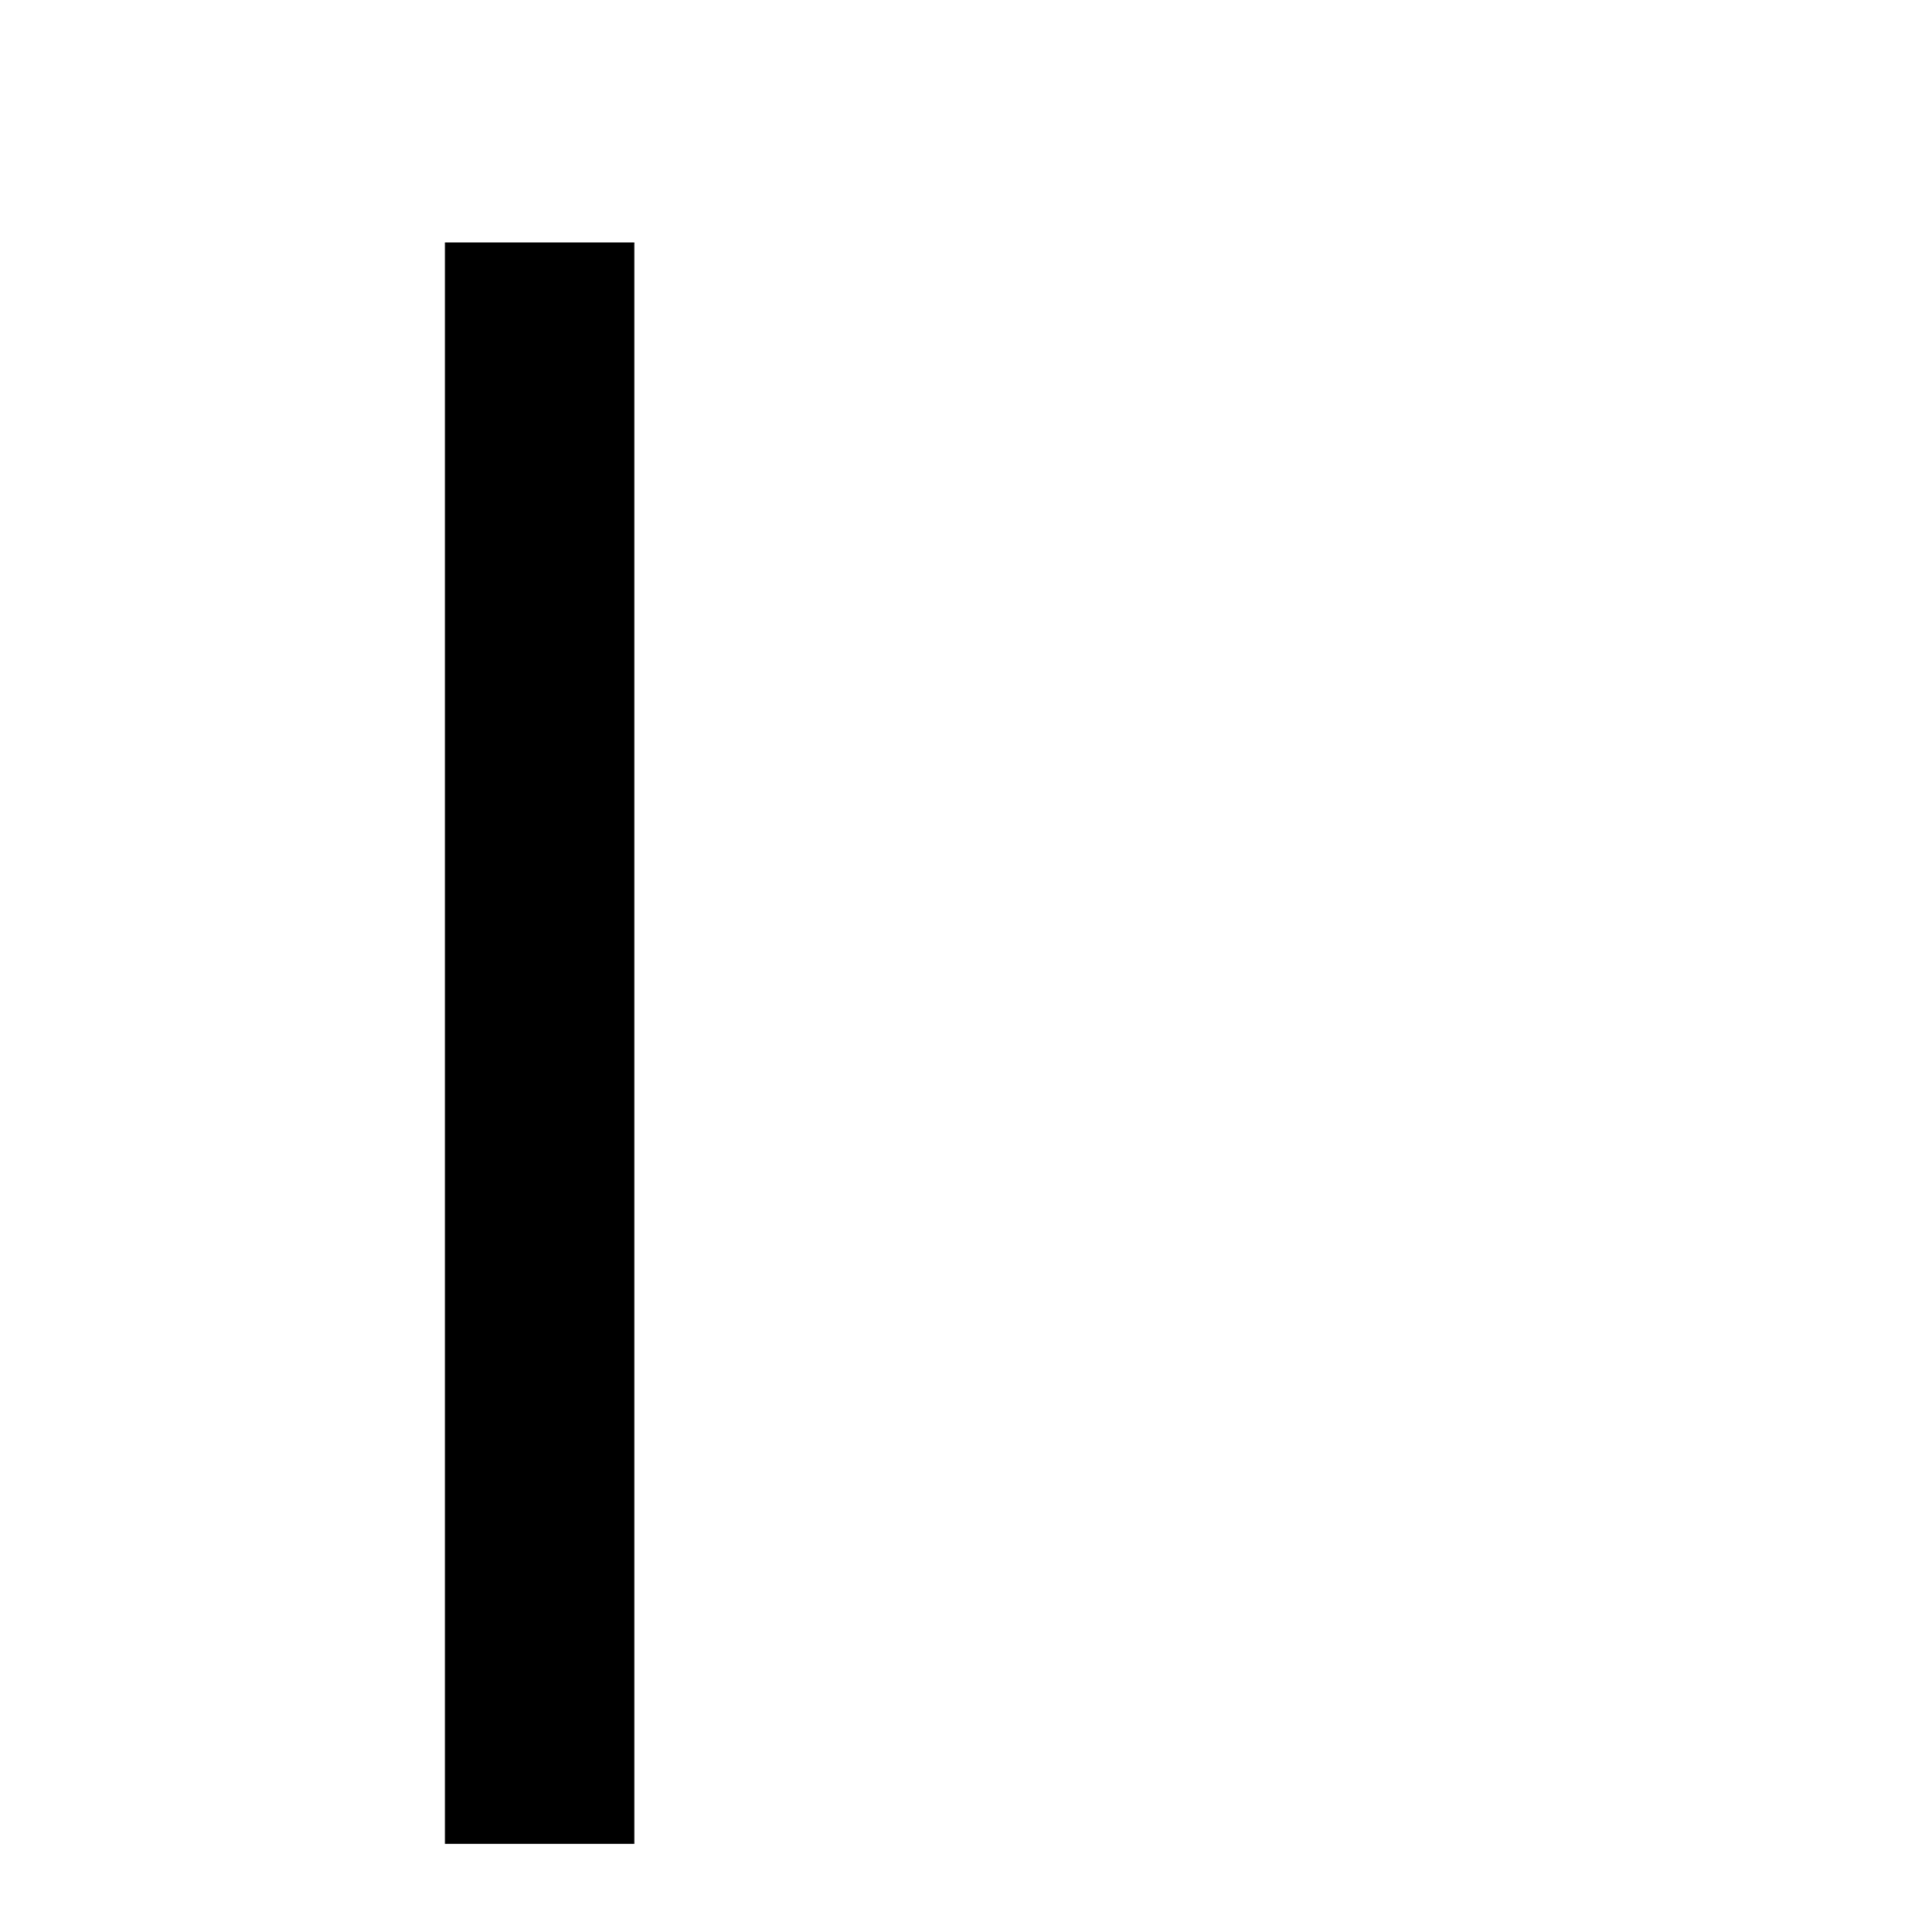 Letter l png. File svg wikimedia commons